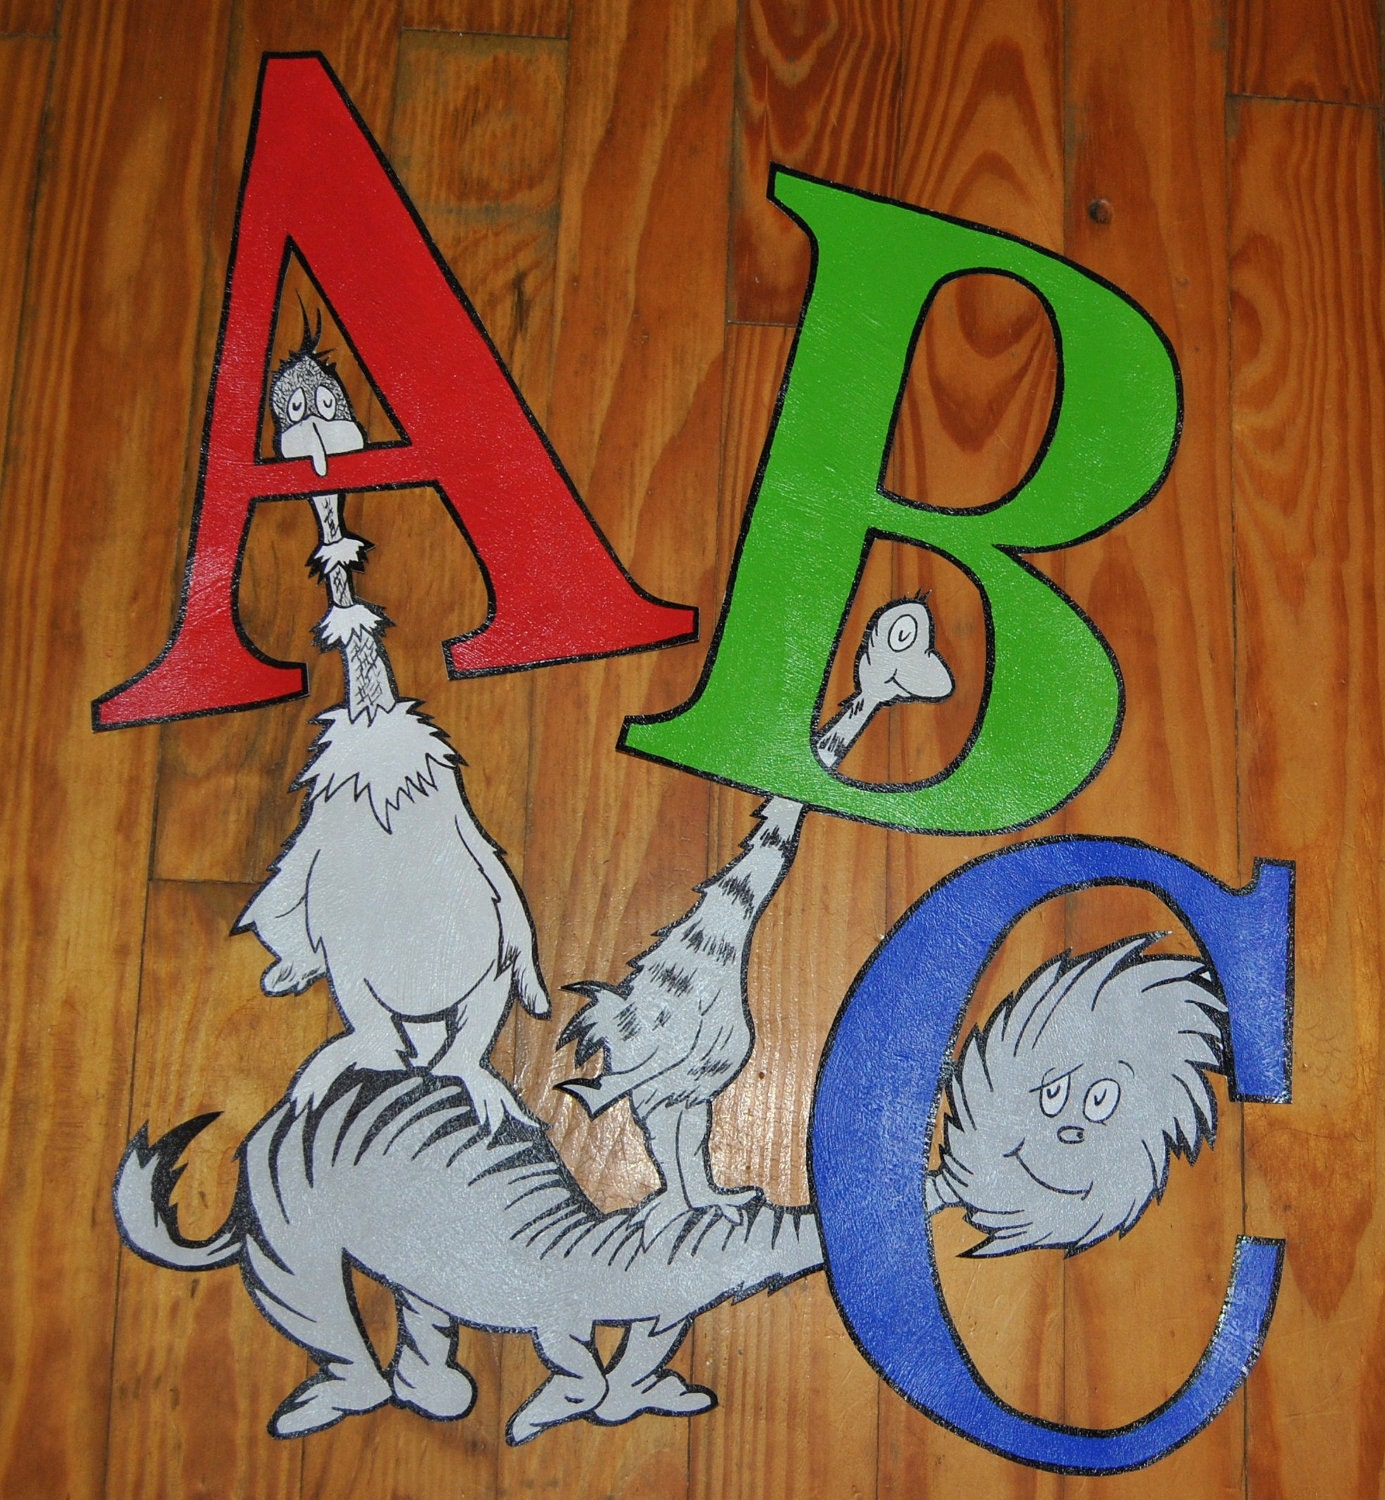 Dr seuss abc wallpaper mural wall decor by mamashpey1 on etsy for Dr seuss wall mural